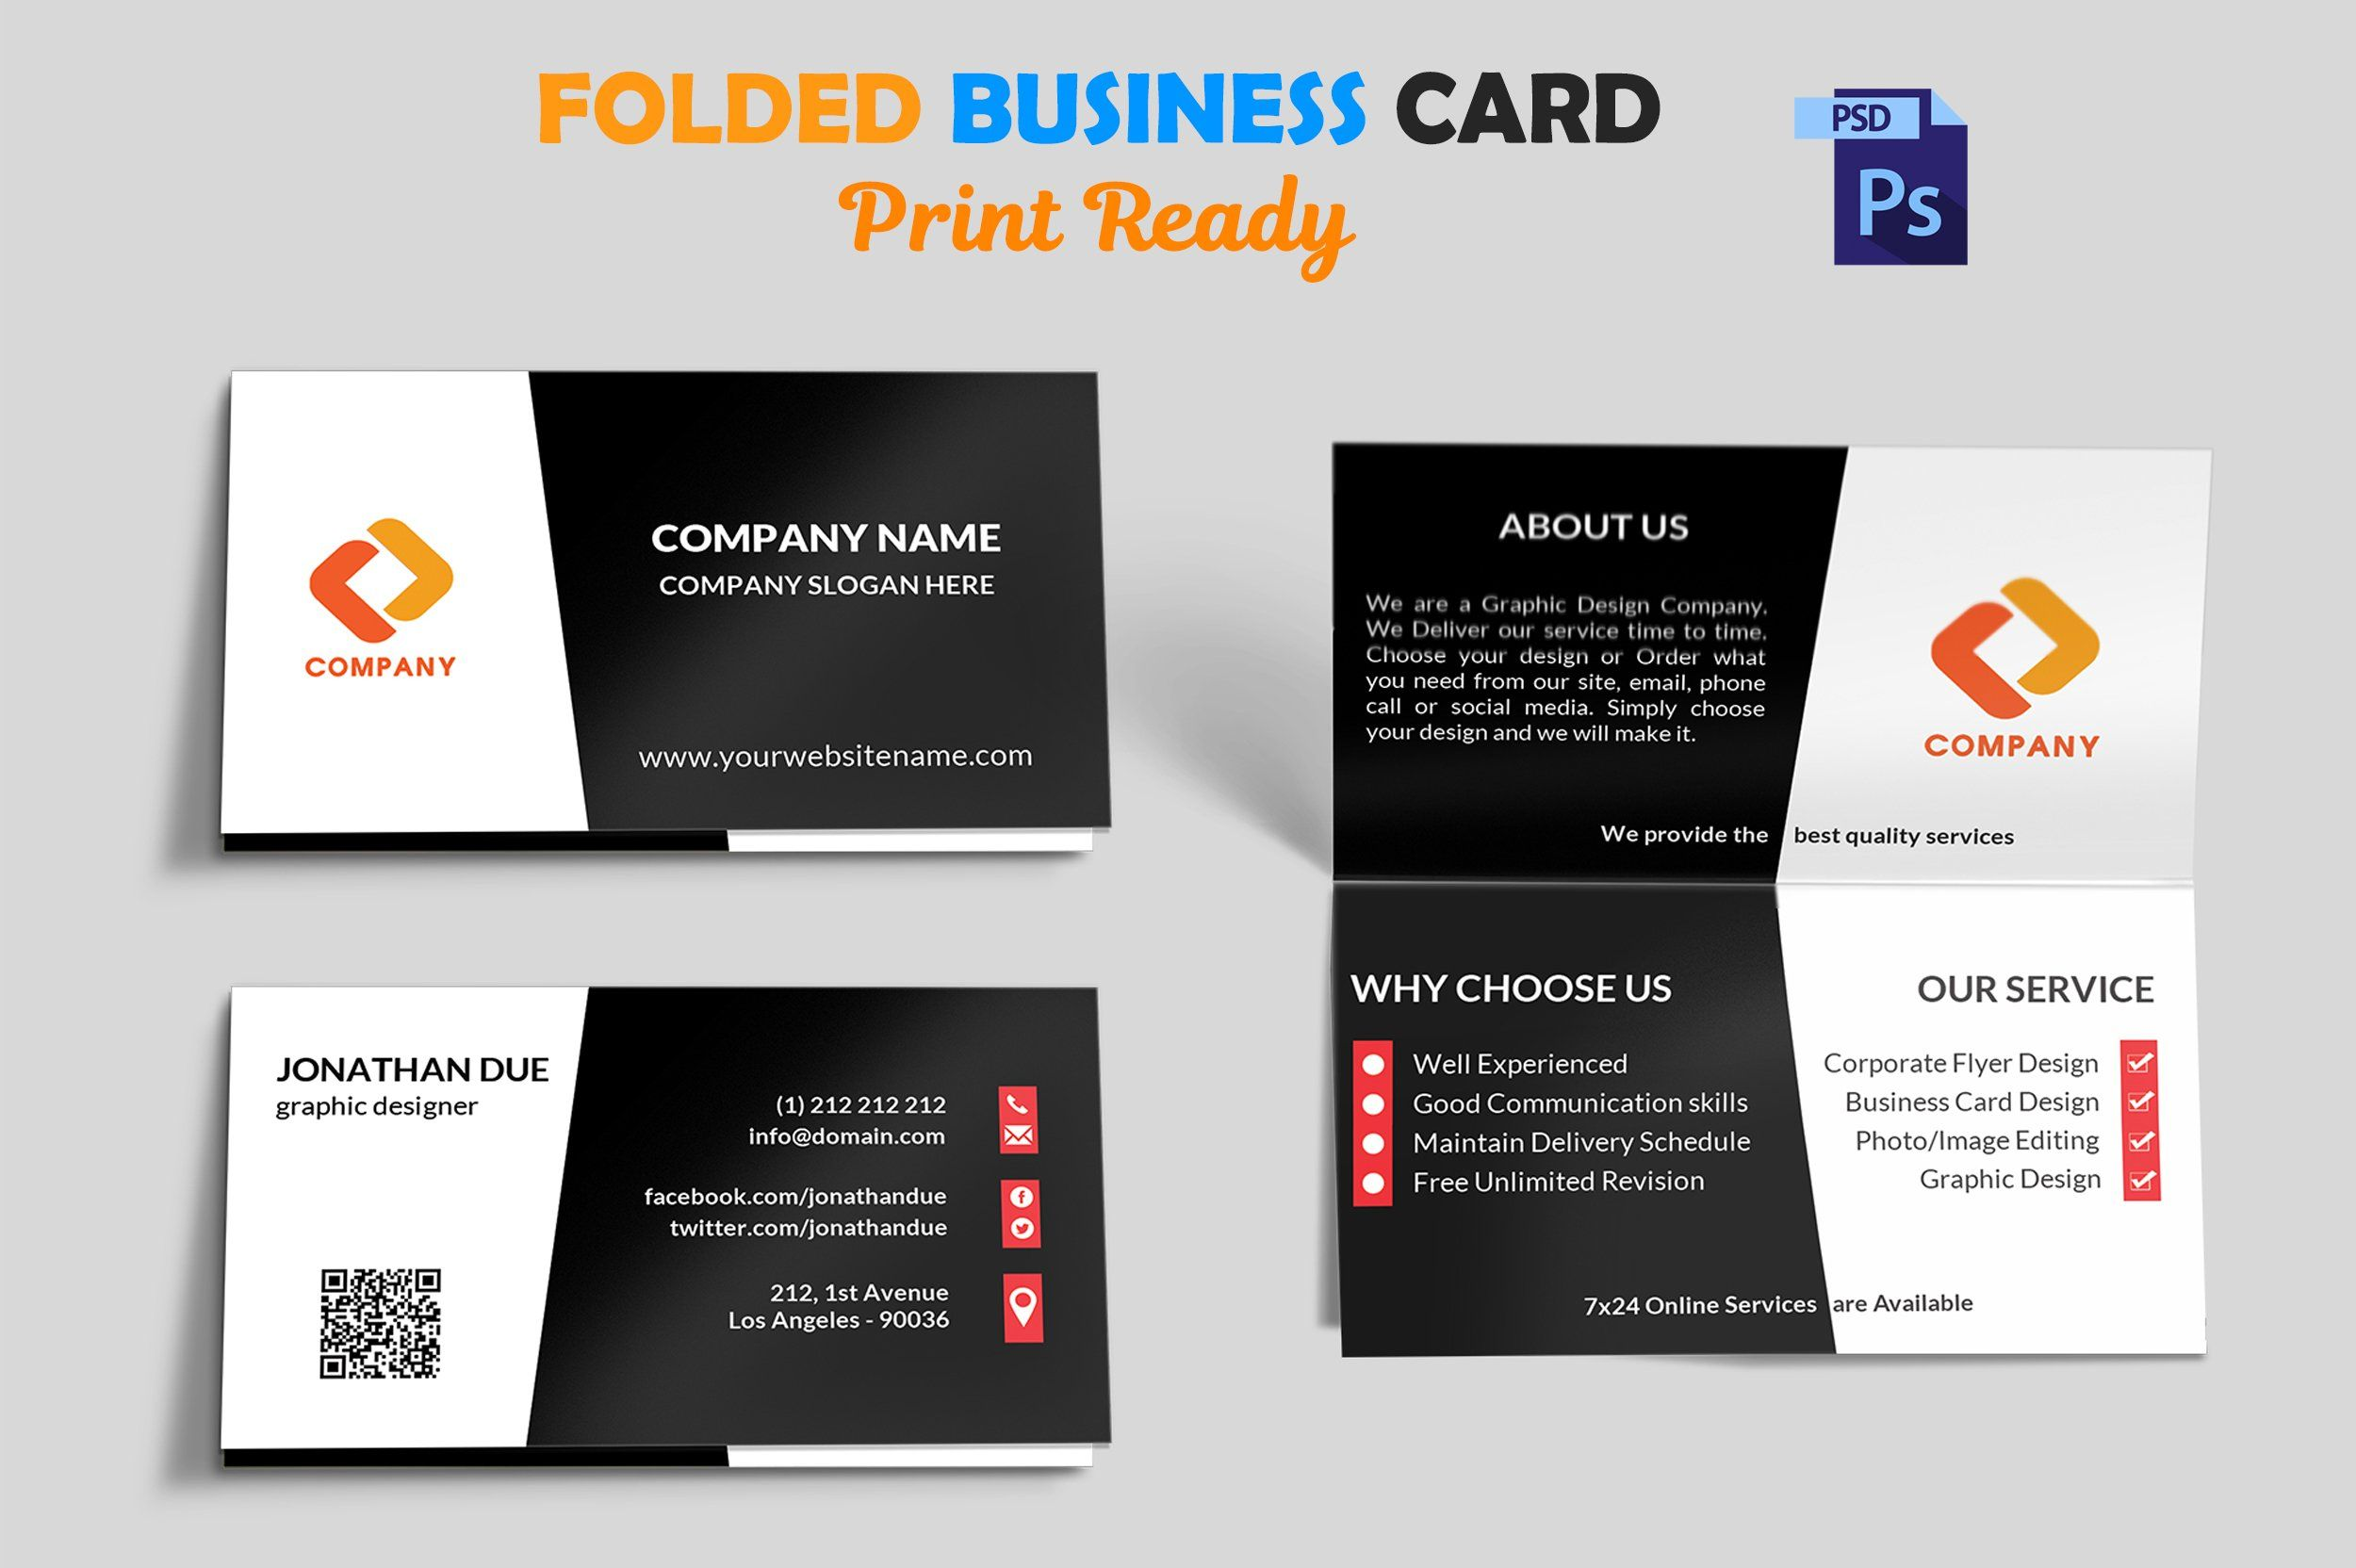 Creative Folded Business Card Vol 3 Folded Business Cards